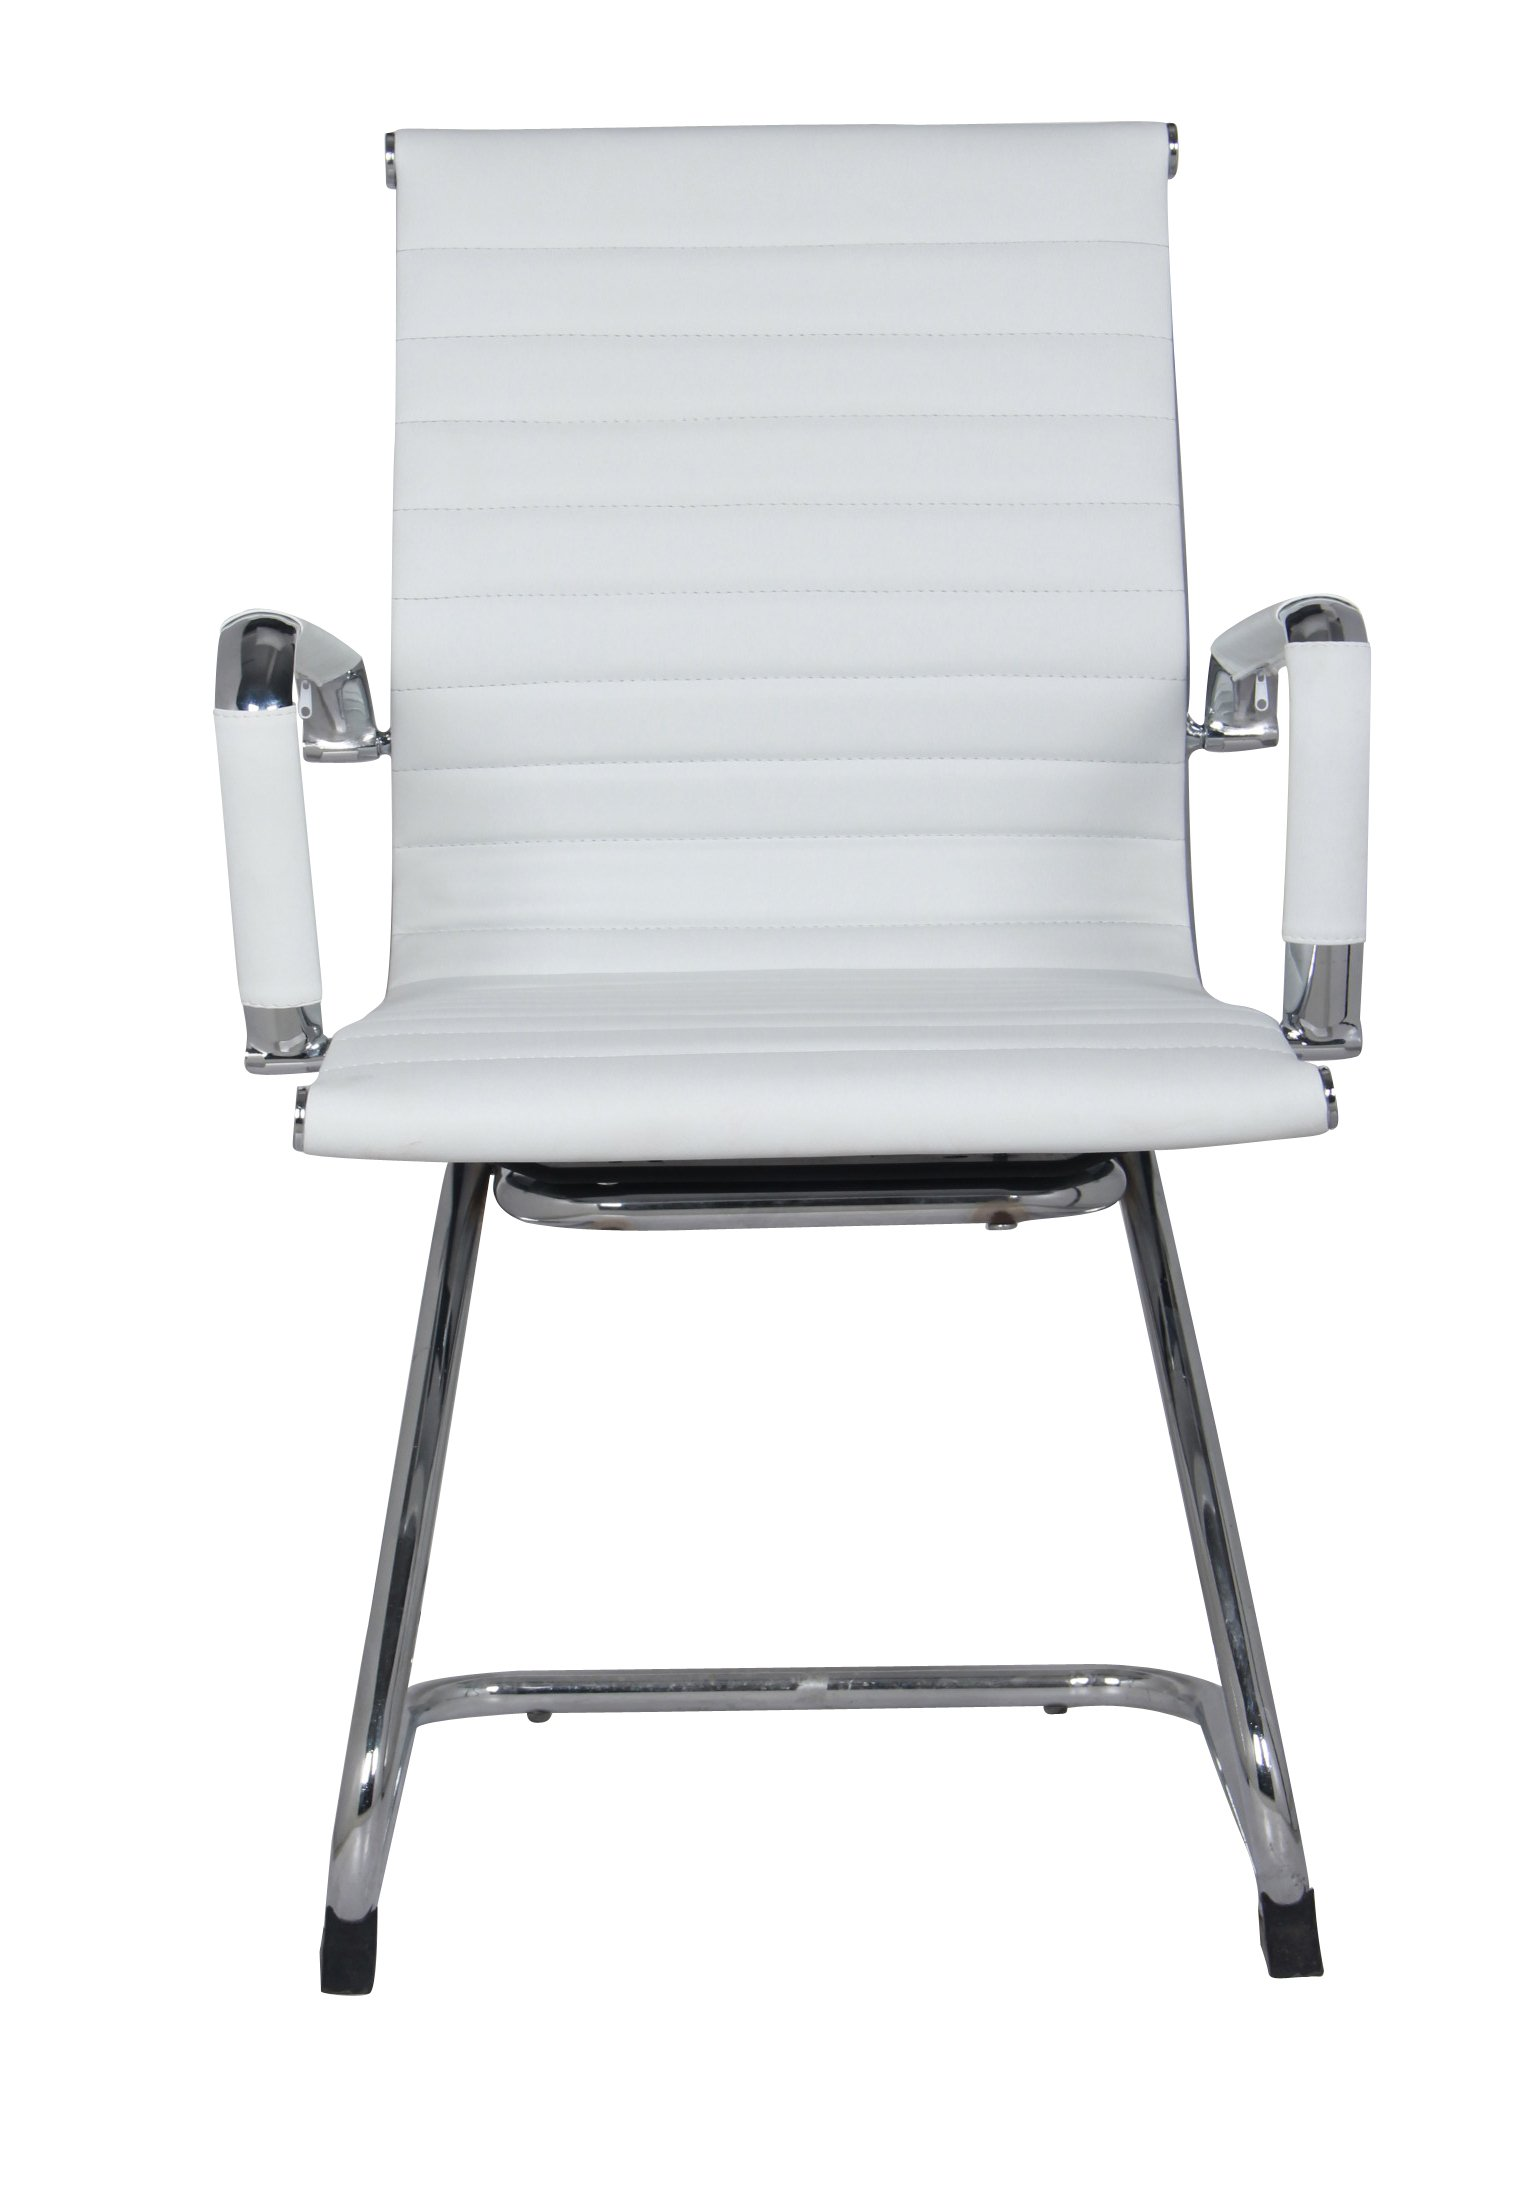 Classic Replica Visitors Chair in White PU Leather. Chrome arms with Protective arm Sleeves with Zip Available. Suitable for Office and Home   Set of 2 Chairs by US Office Elements (Image #2)